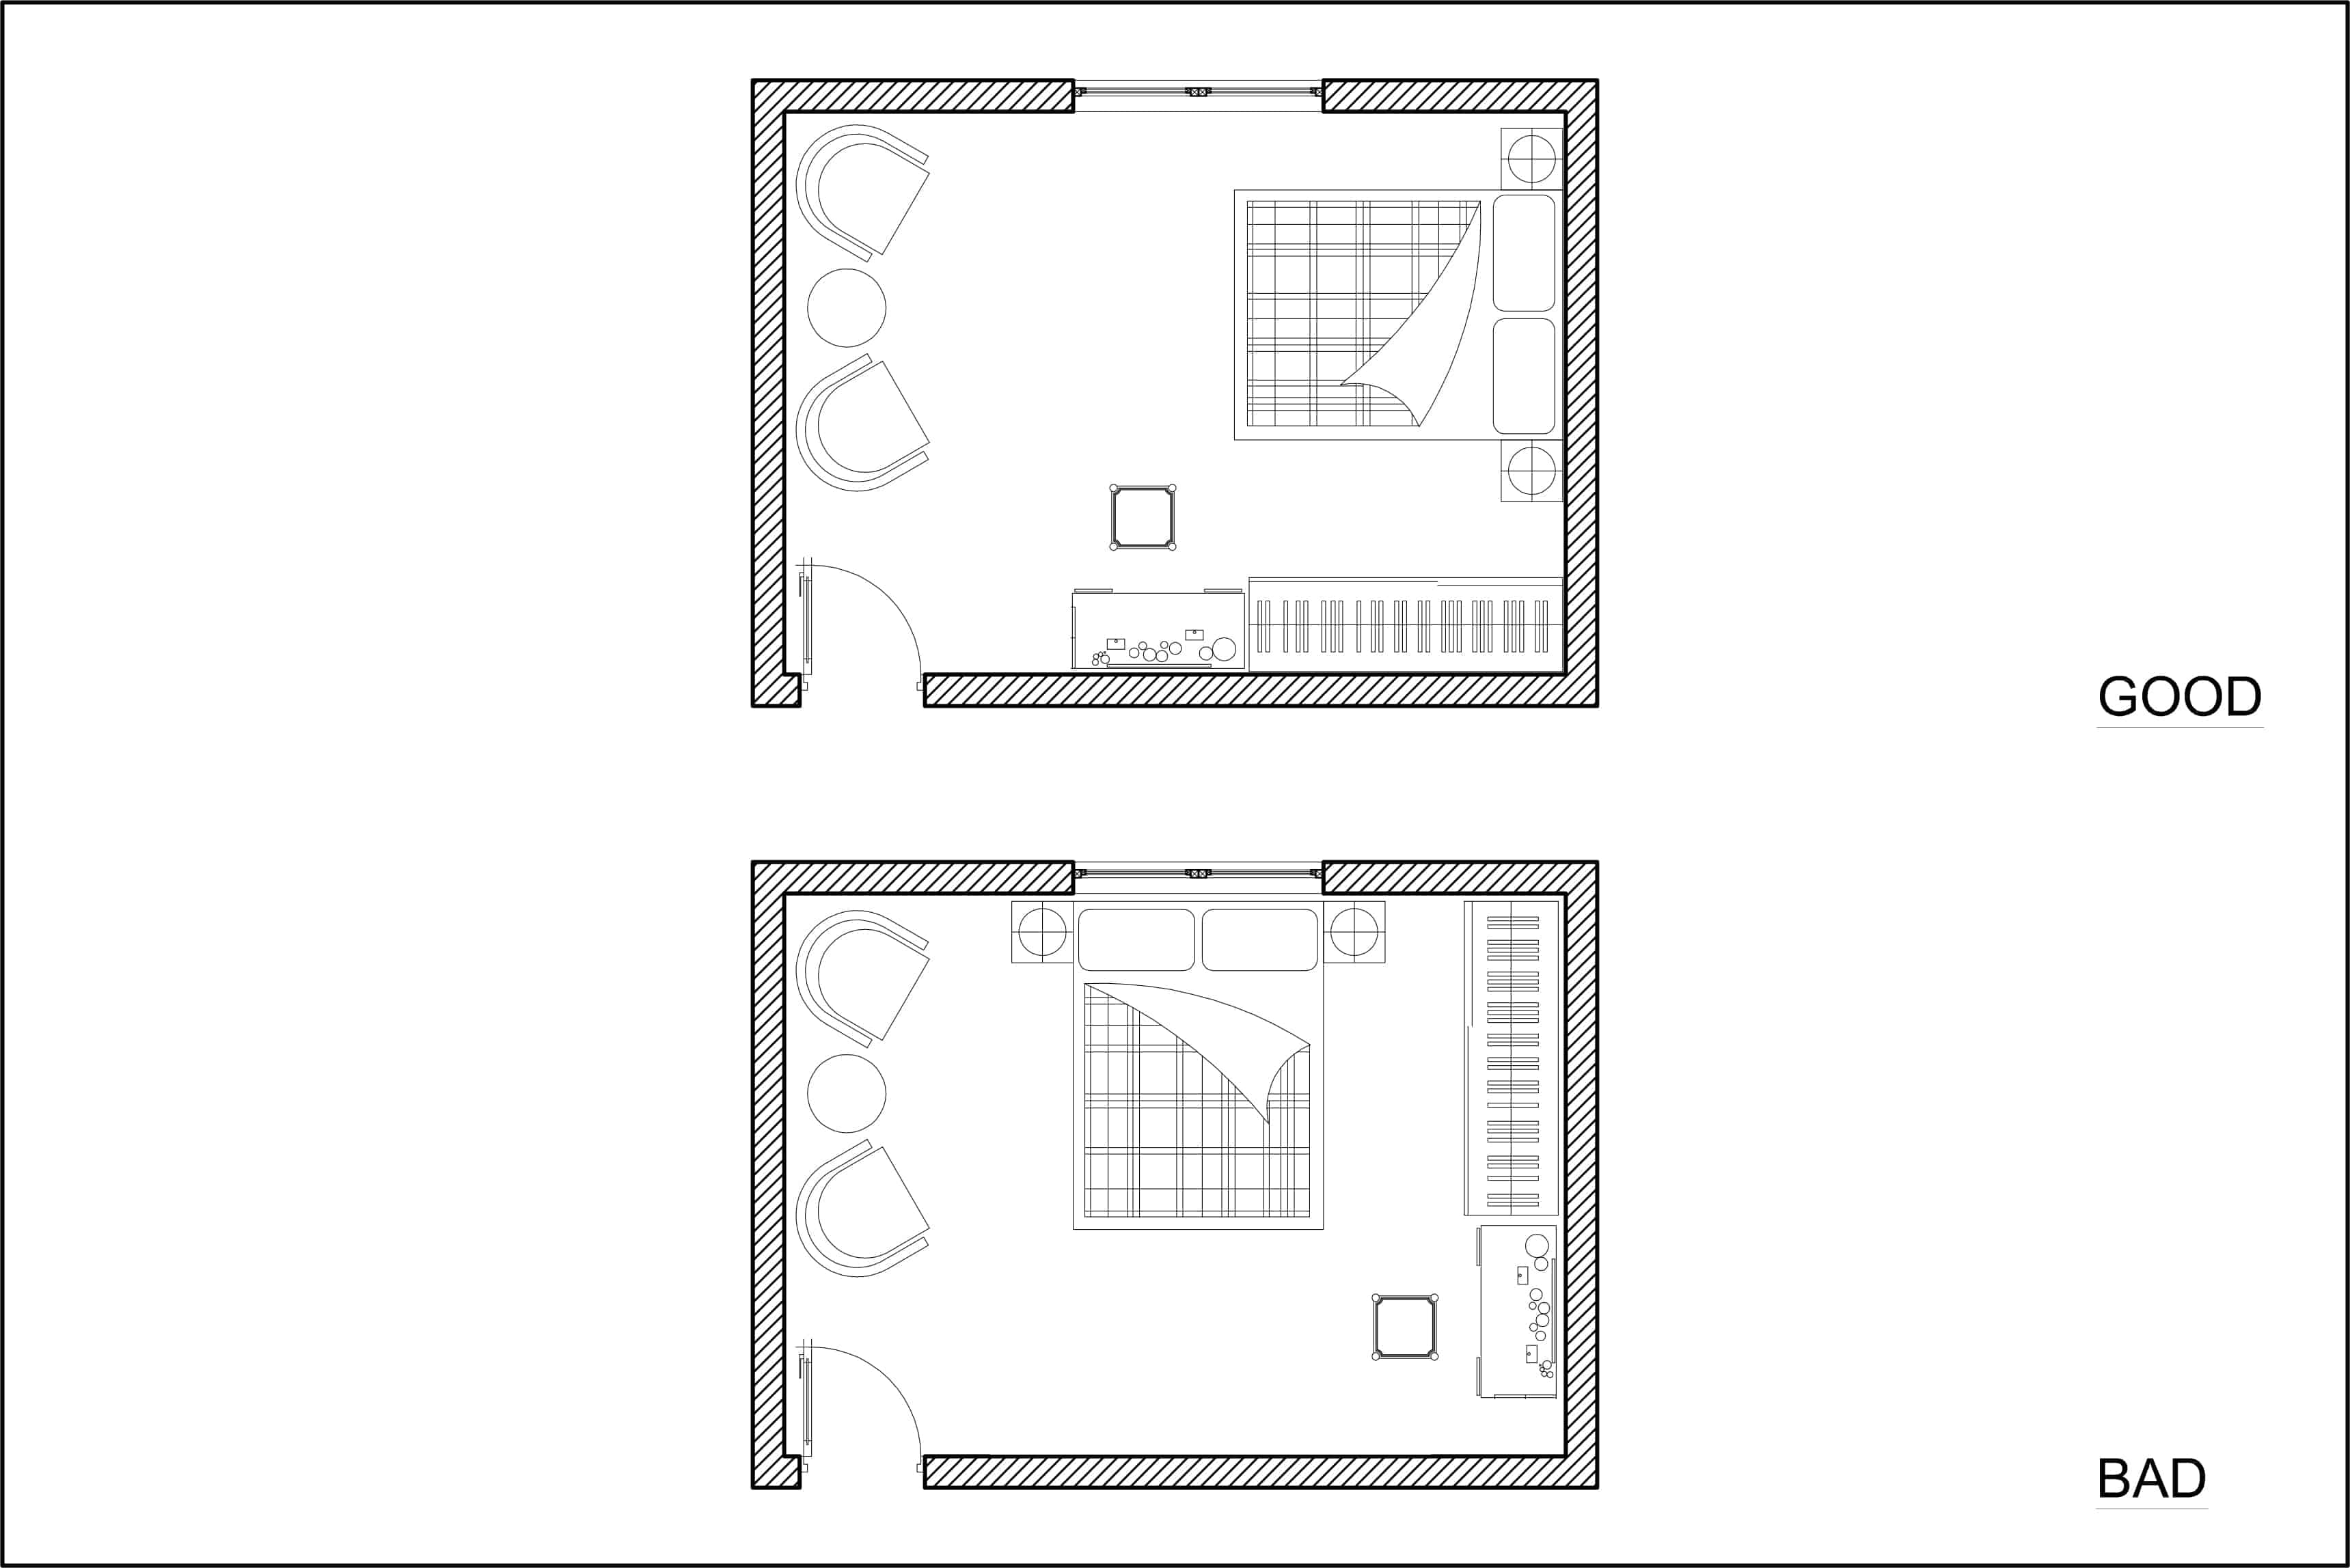 Layout diagram of good and bad bedroom Feng Shui